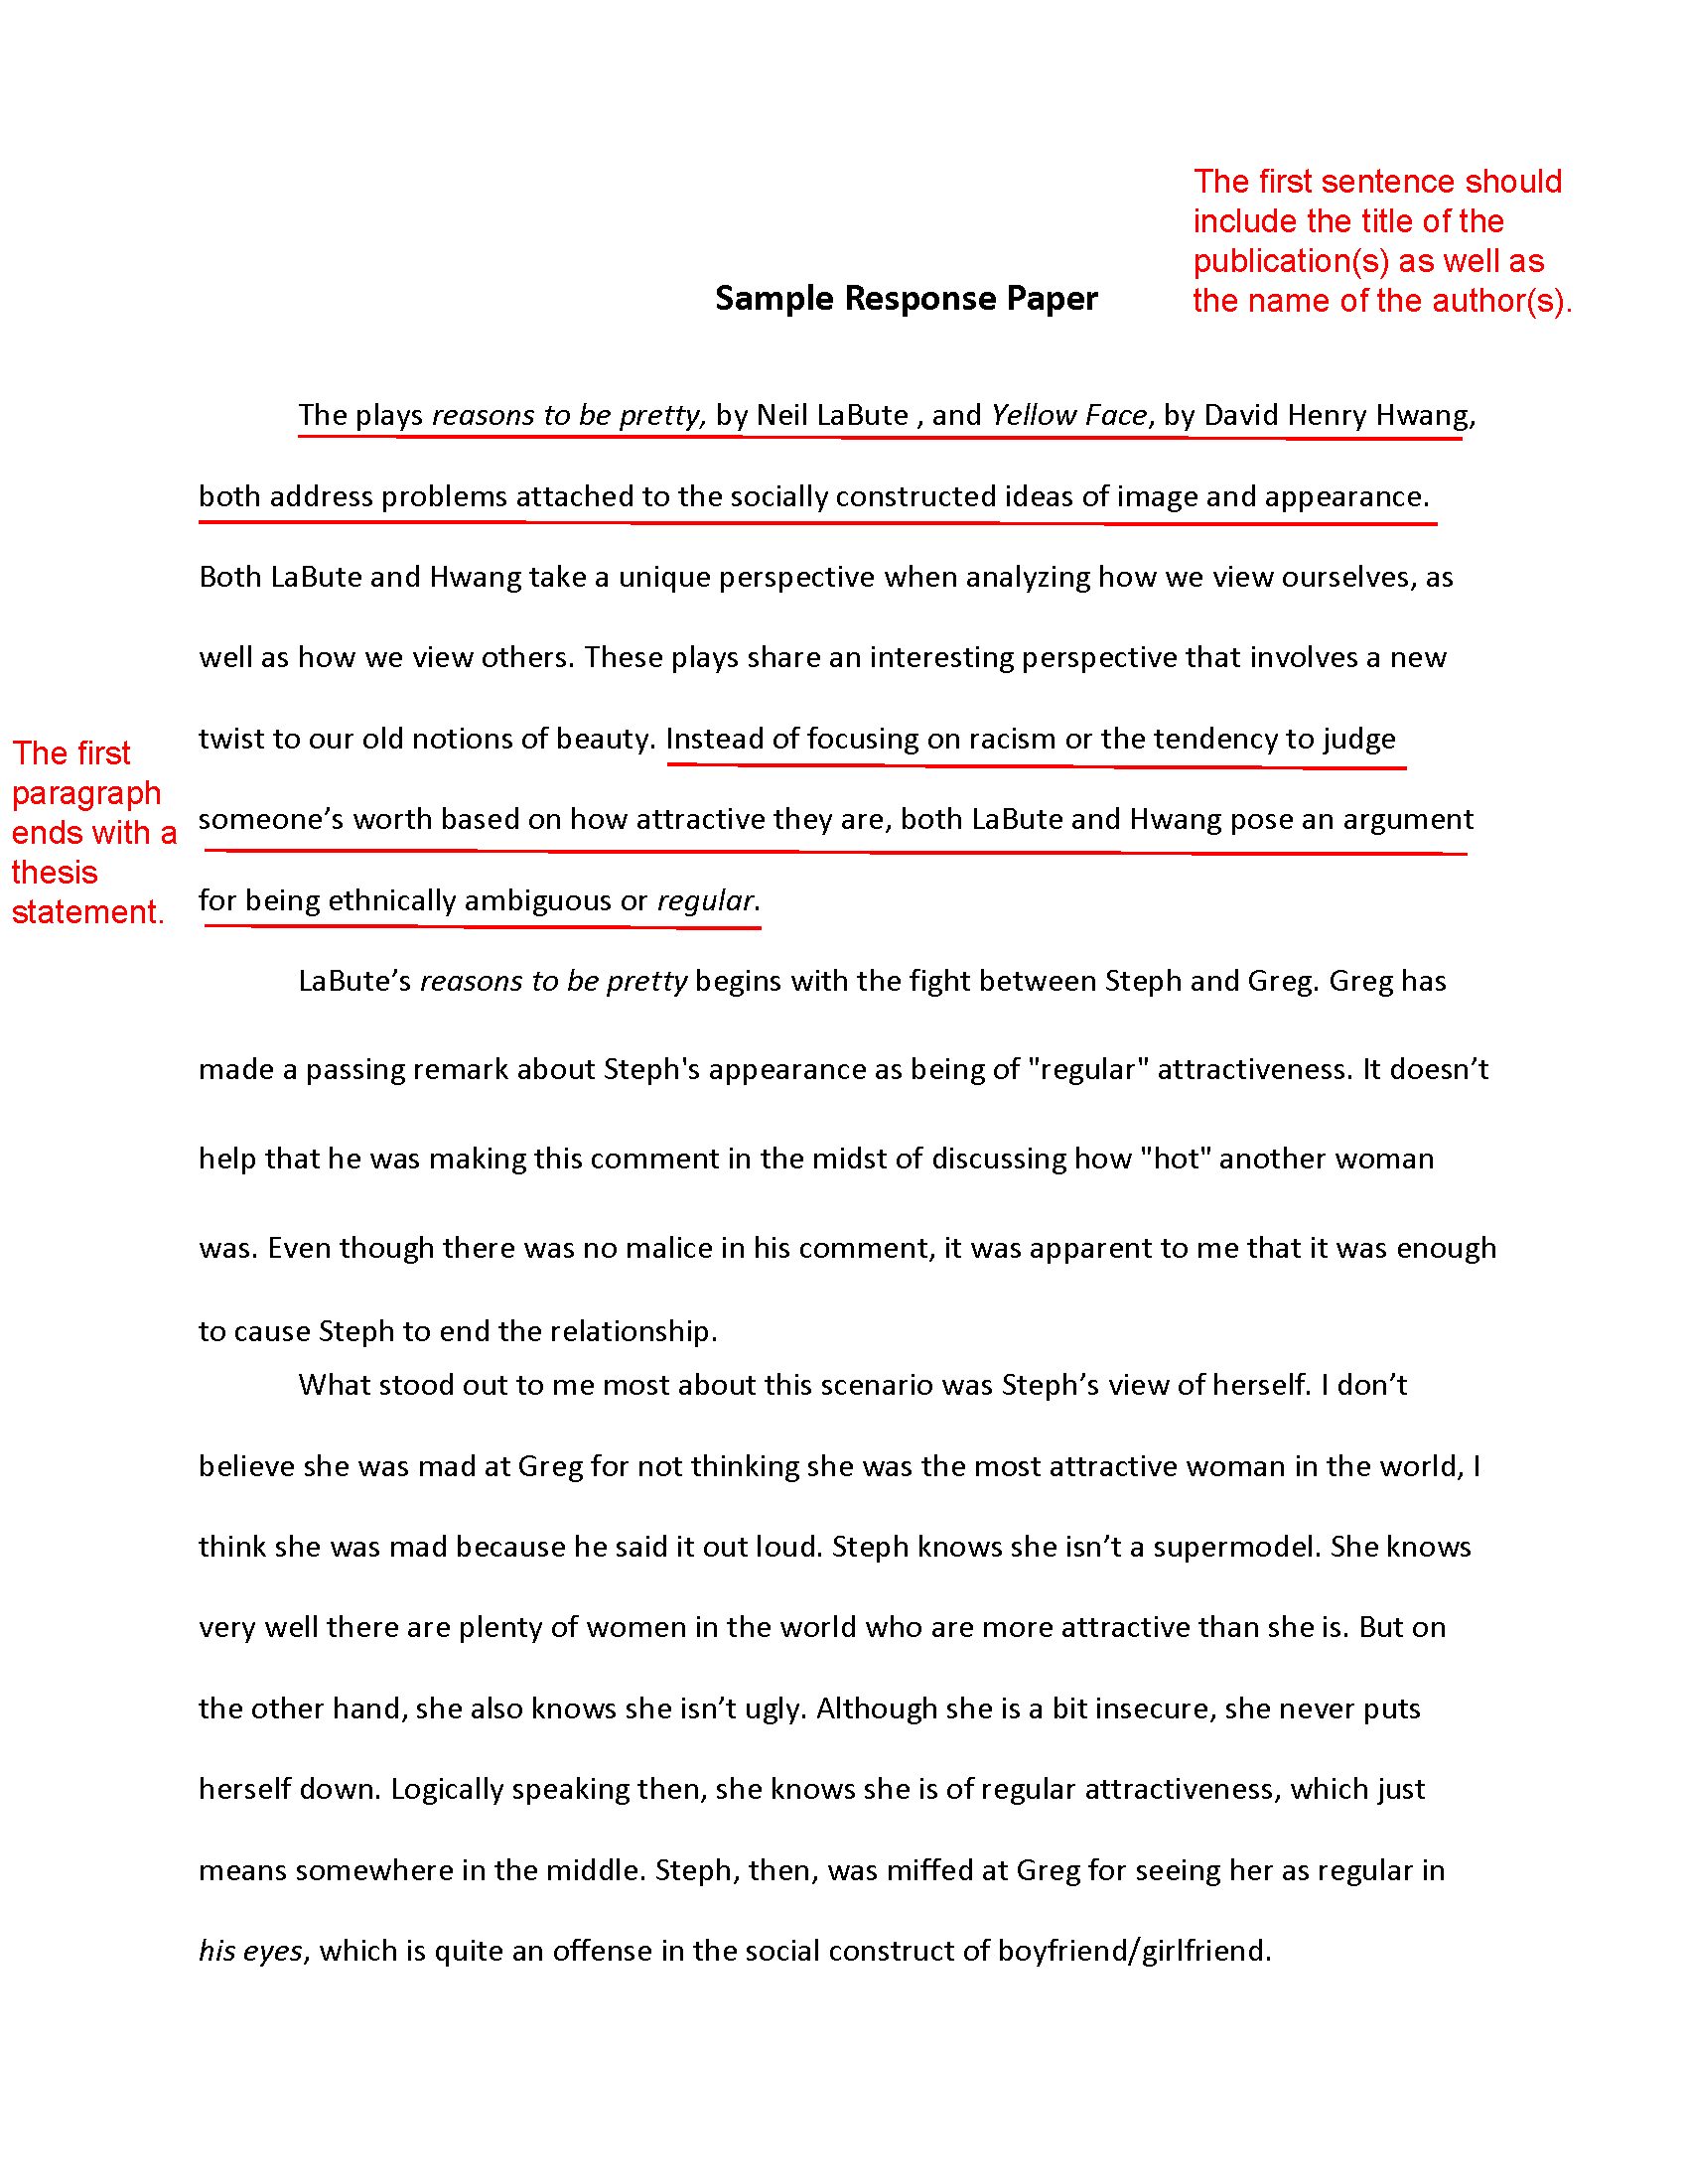 write an effective response paper with these tips  school  essay  how to write a response paper aboutcom